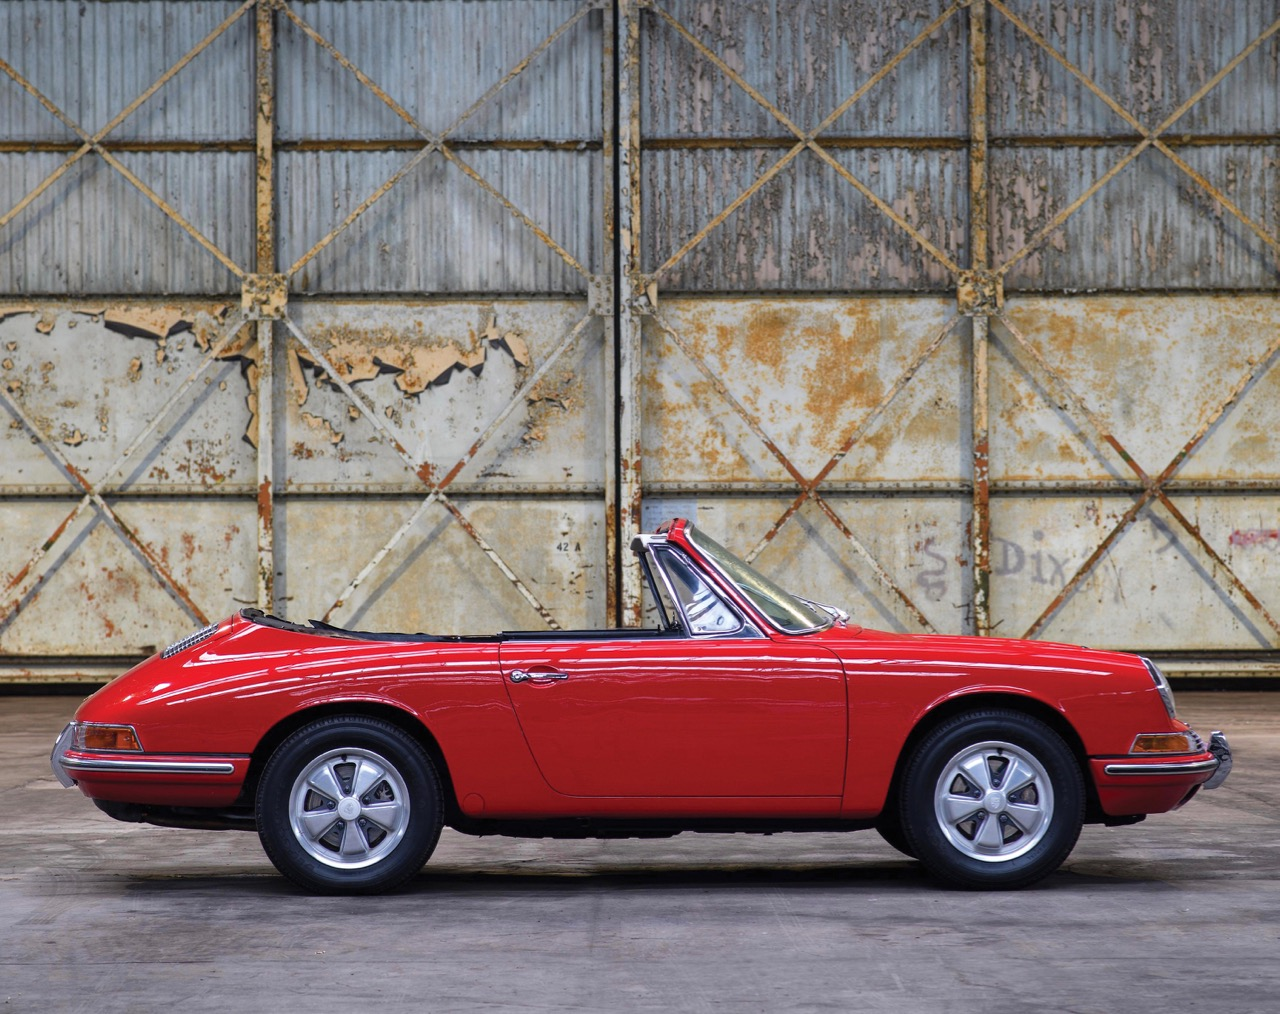 Of the 13 Porsche 901 prototypes, only this one was a cabriolet | RM Sotheby's photos by Tim Scott